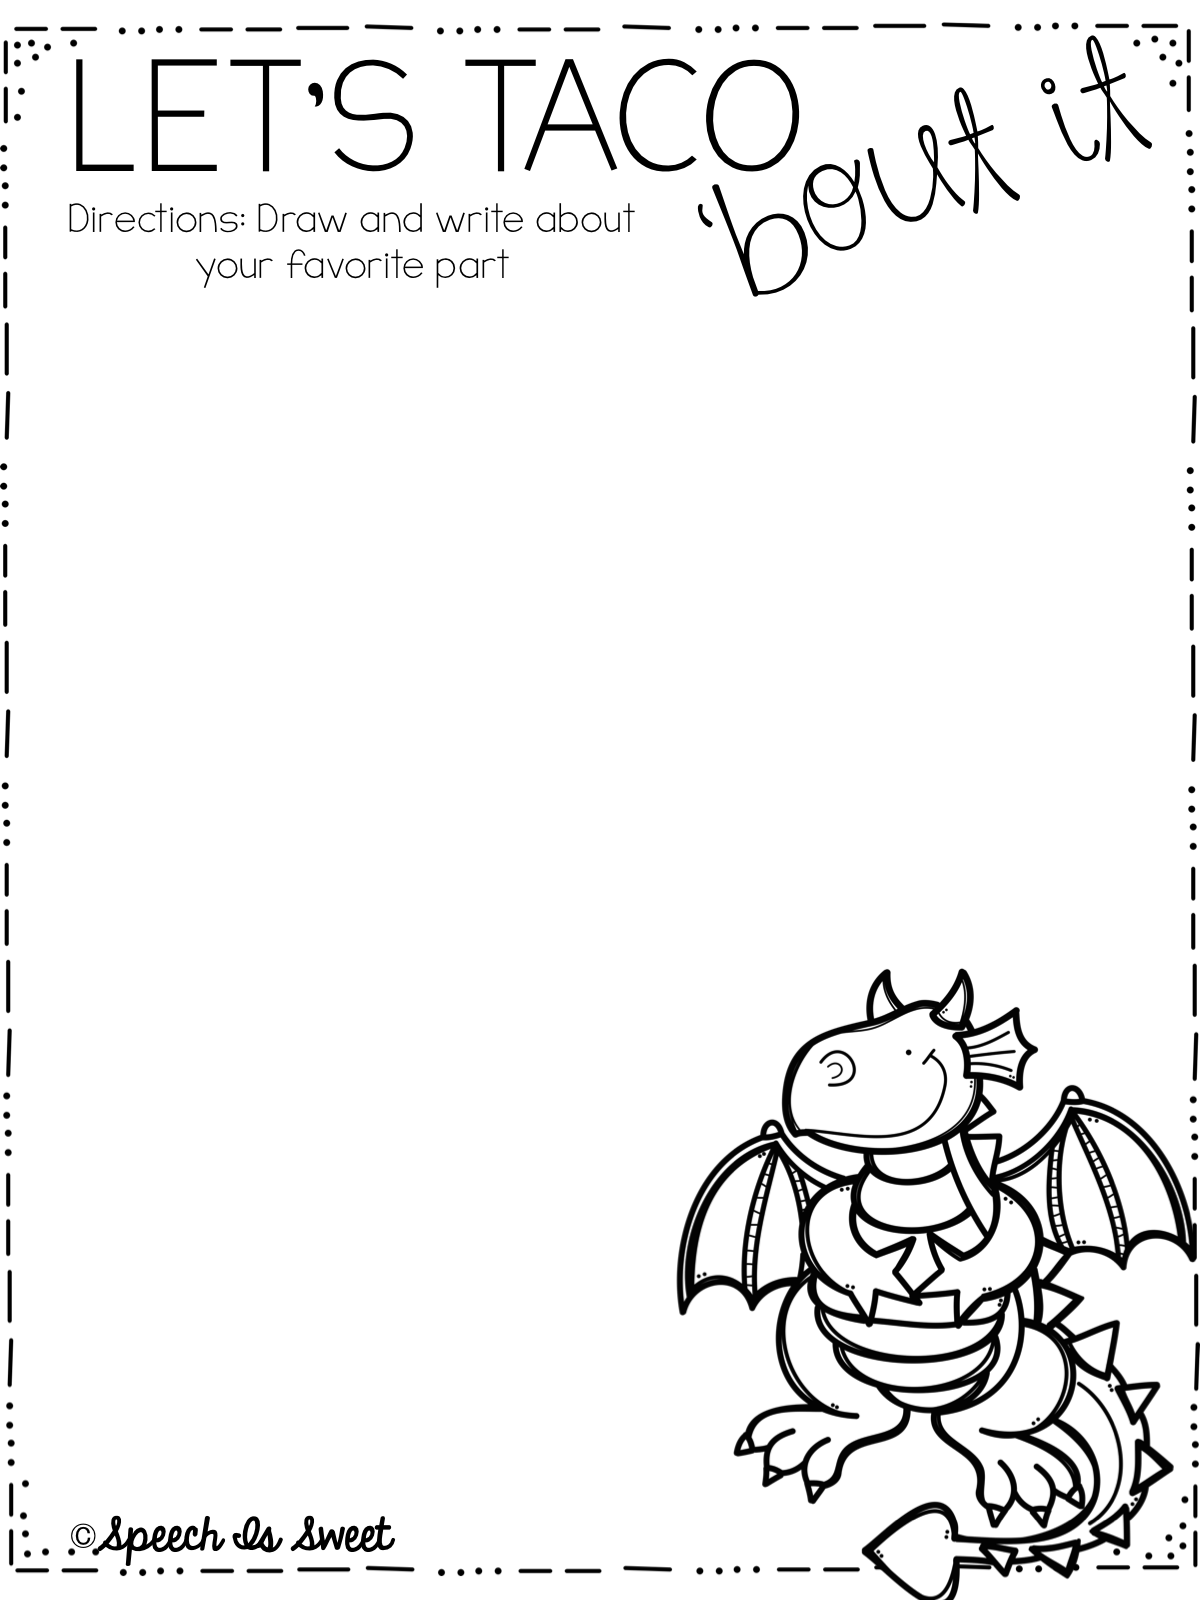 taco printable coloring pages - photo #47